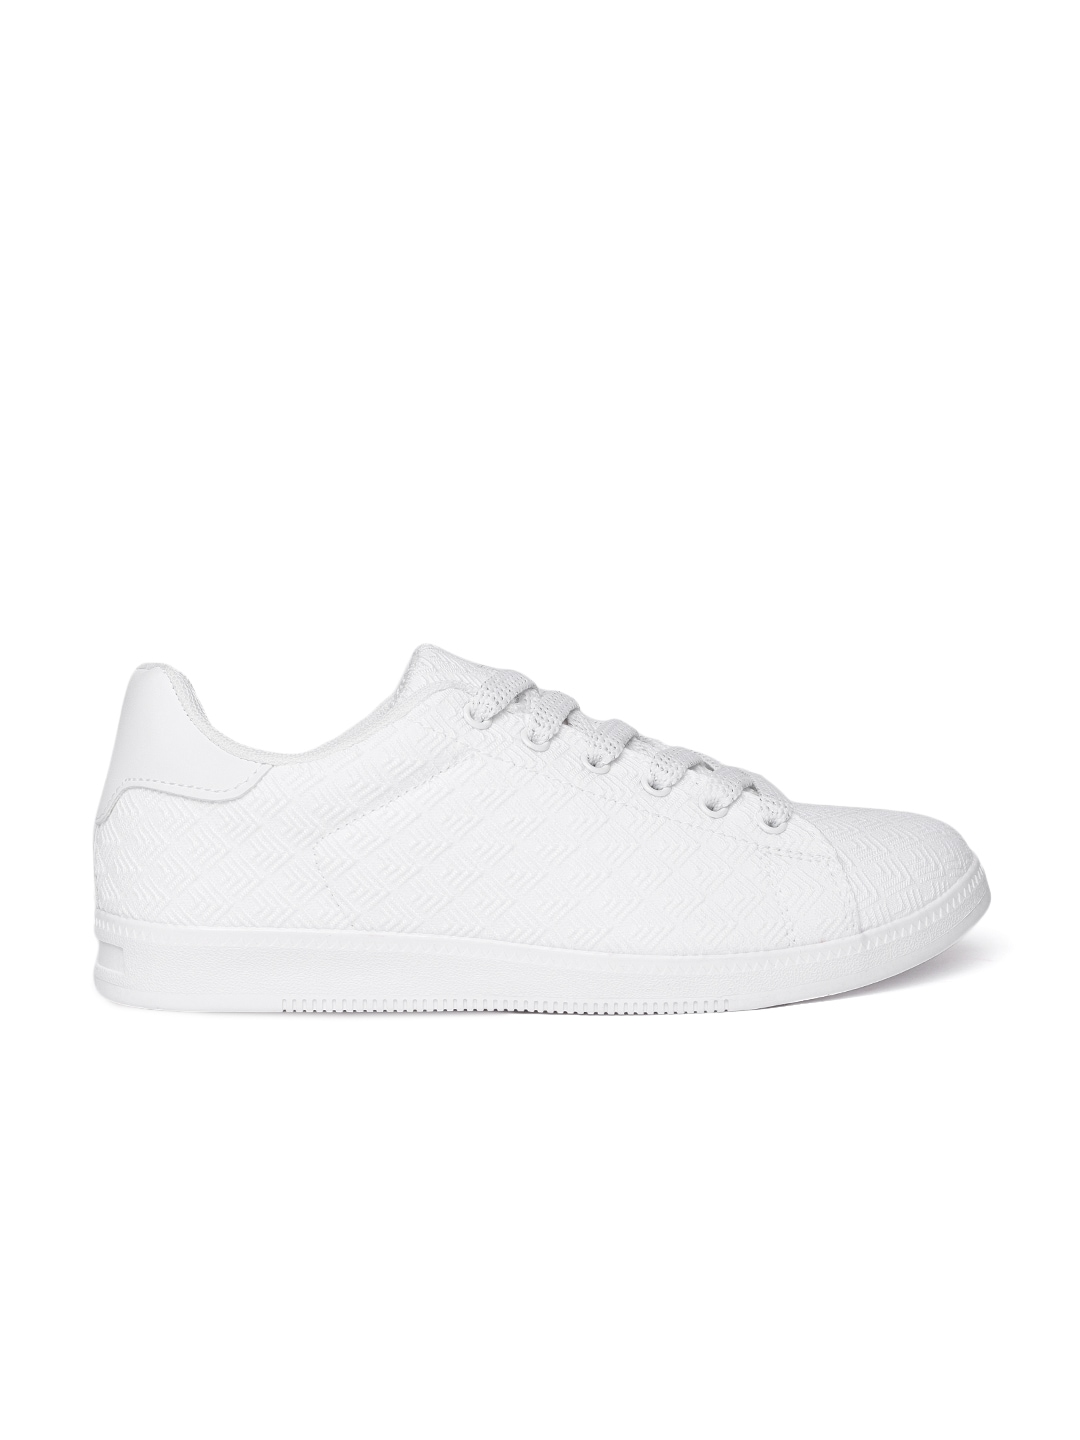 White Sneakers For Women - Buy White Sneakers For Women online in India 39ab0c551